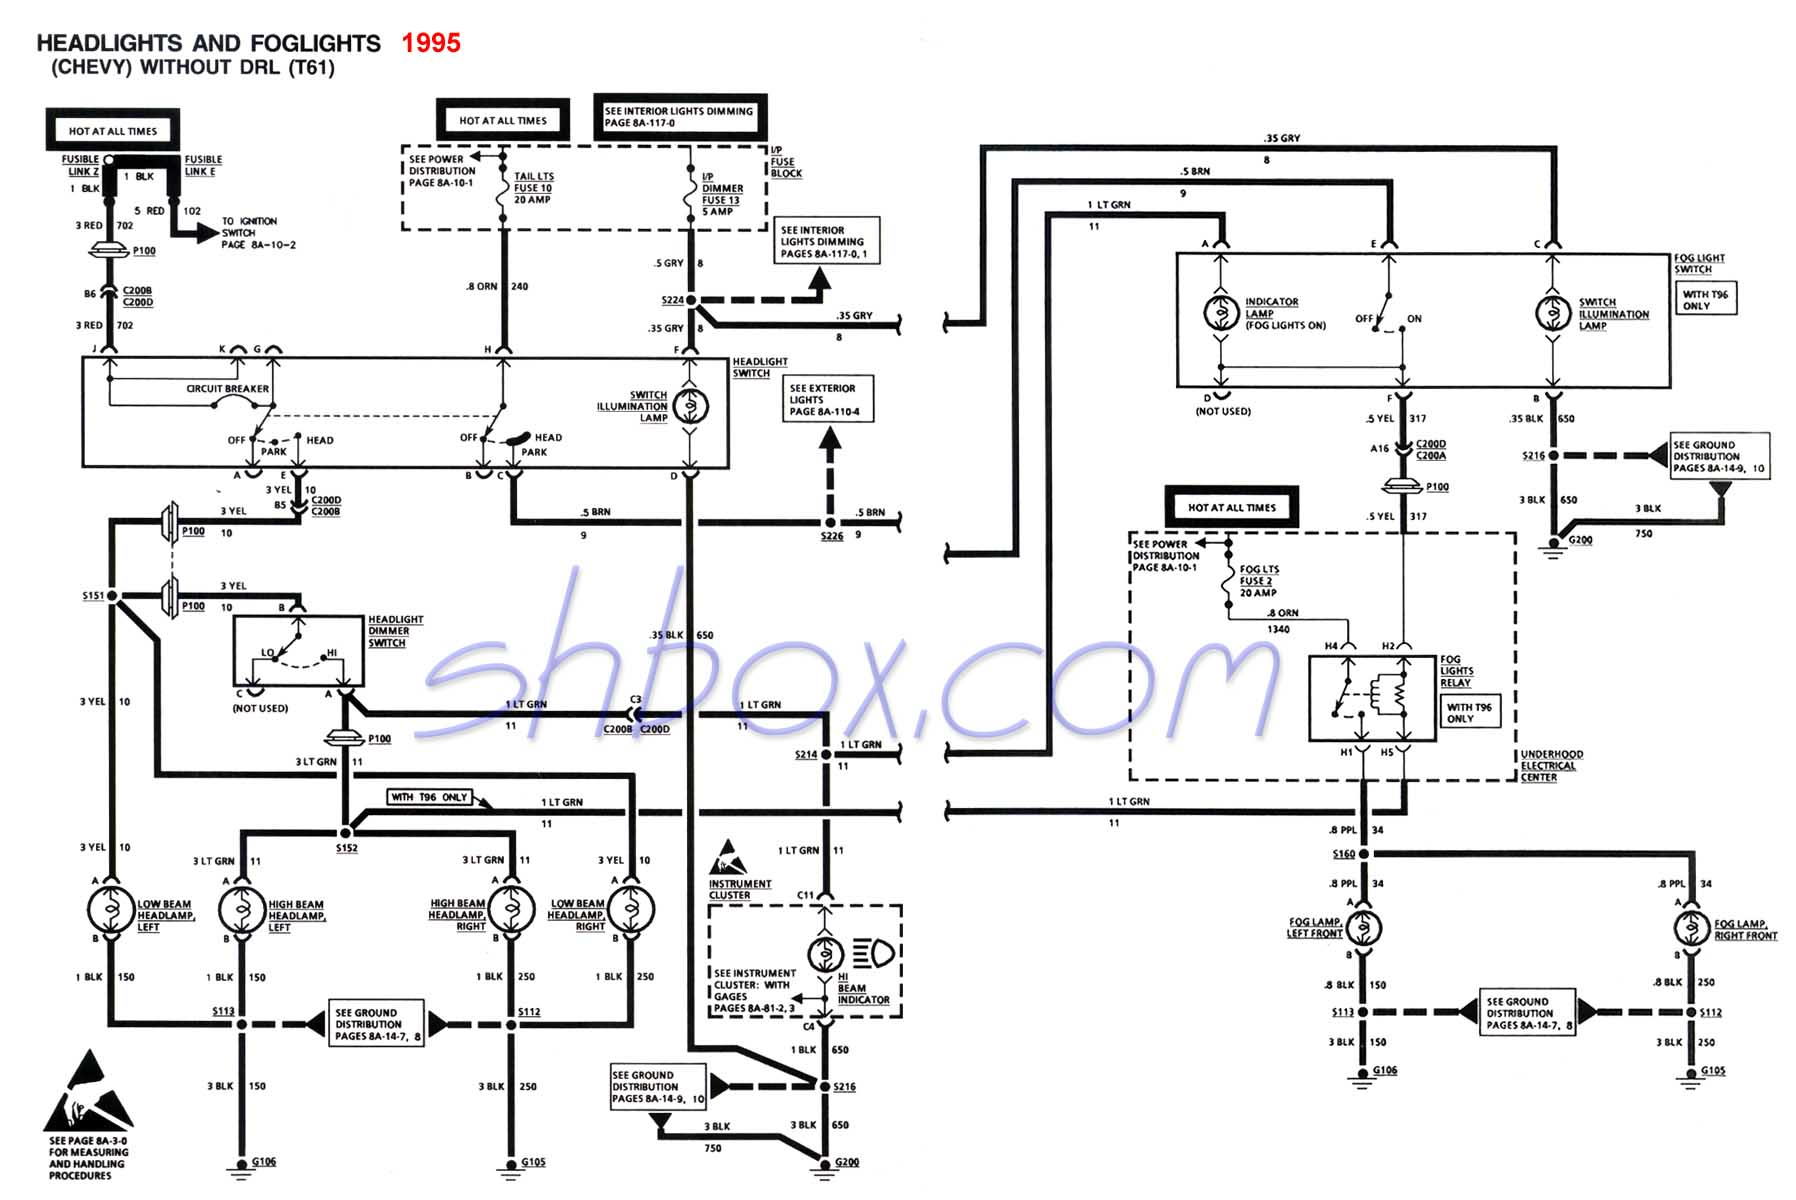 hight resolution of 1996 corvette vats wiring diagram simple wiring diagram rh 40 mara cujas de 1996 corvette wiring